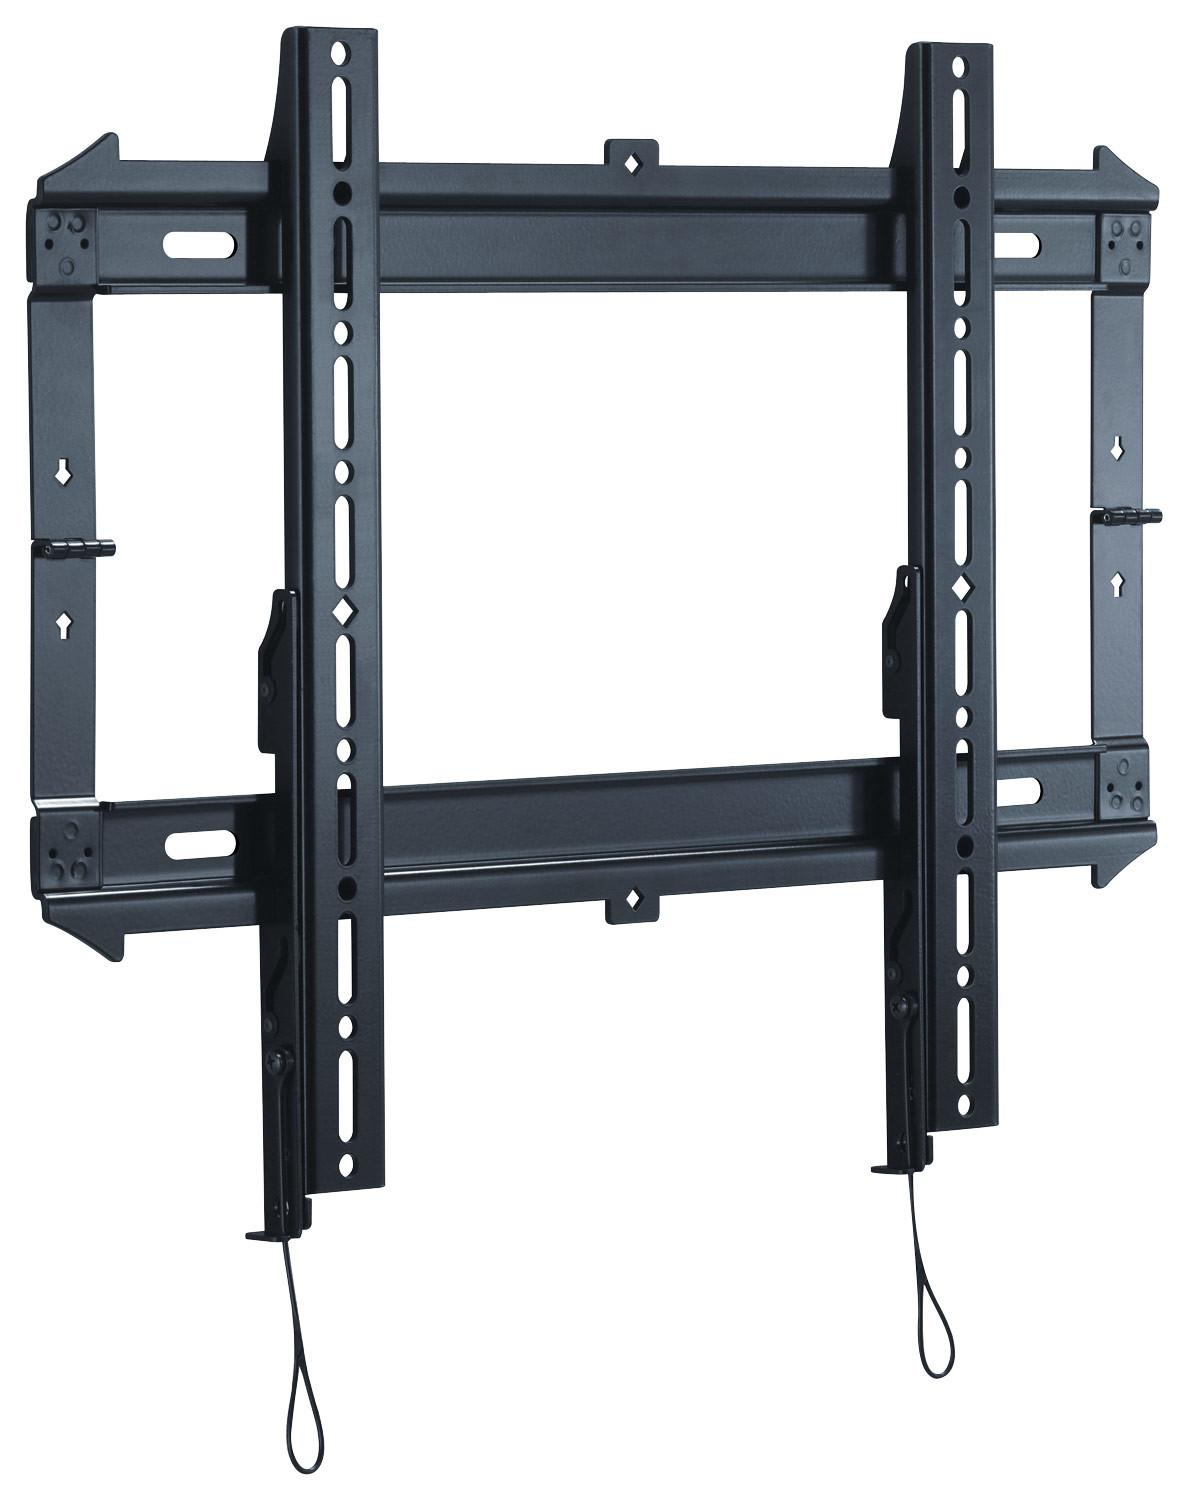 Chief Medium Fit Fixed Wall Mount Most